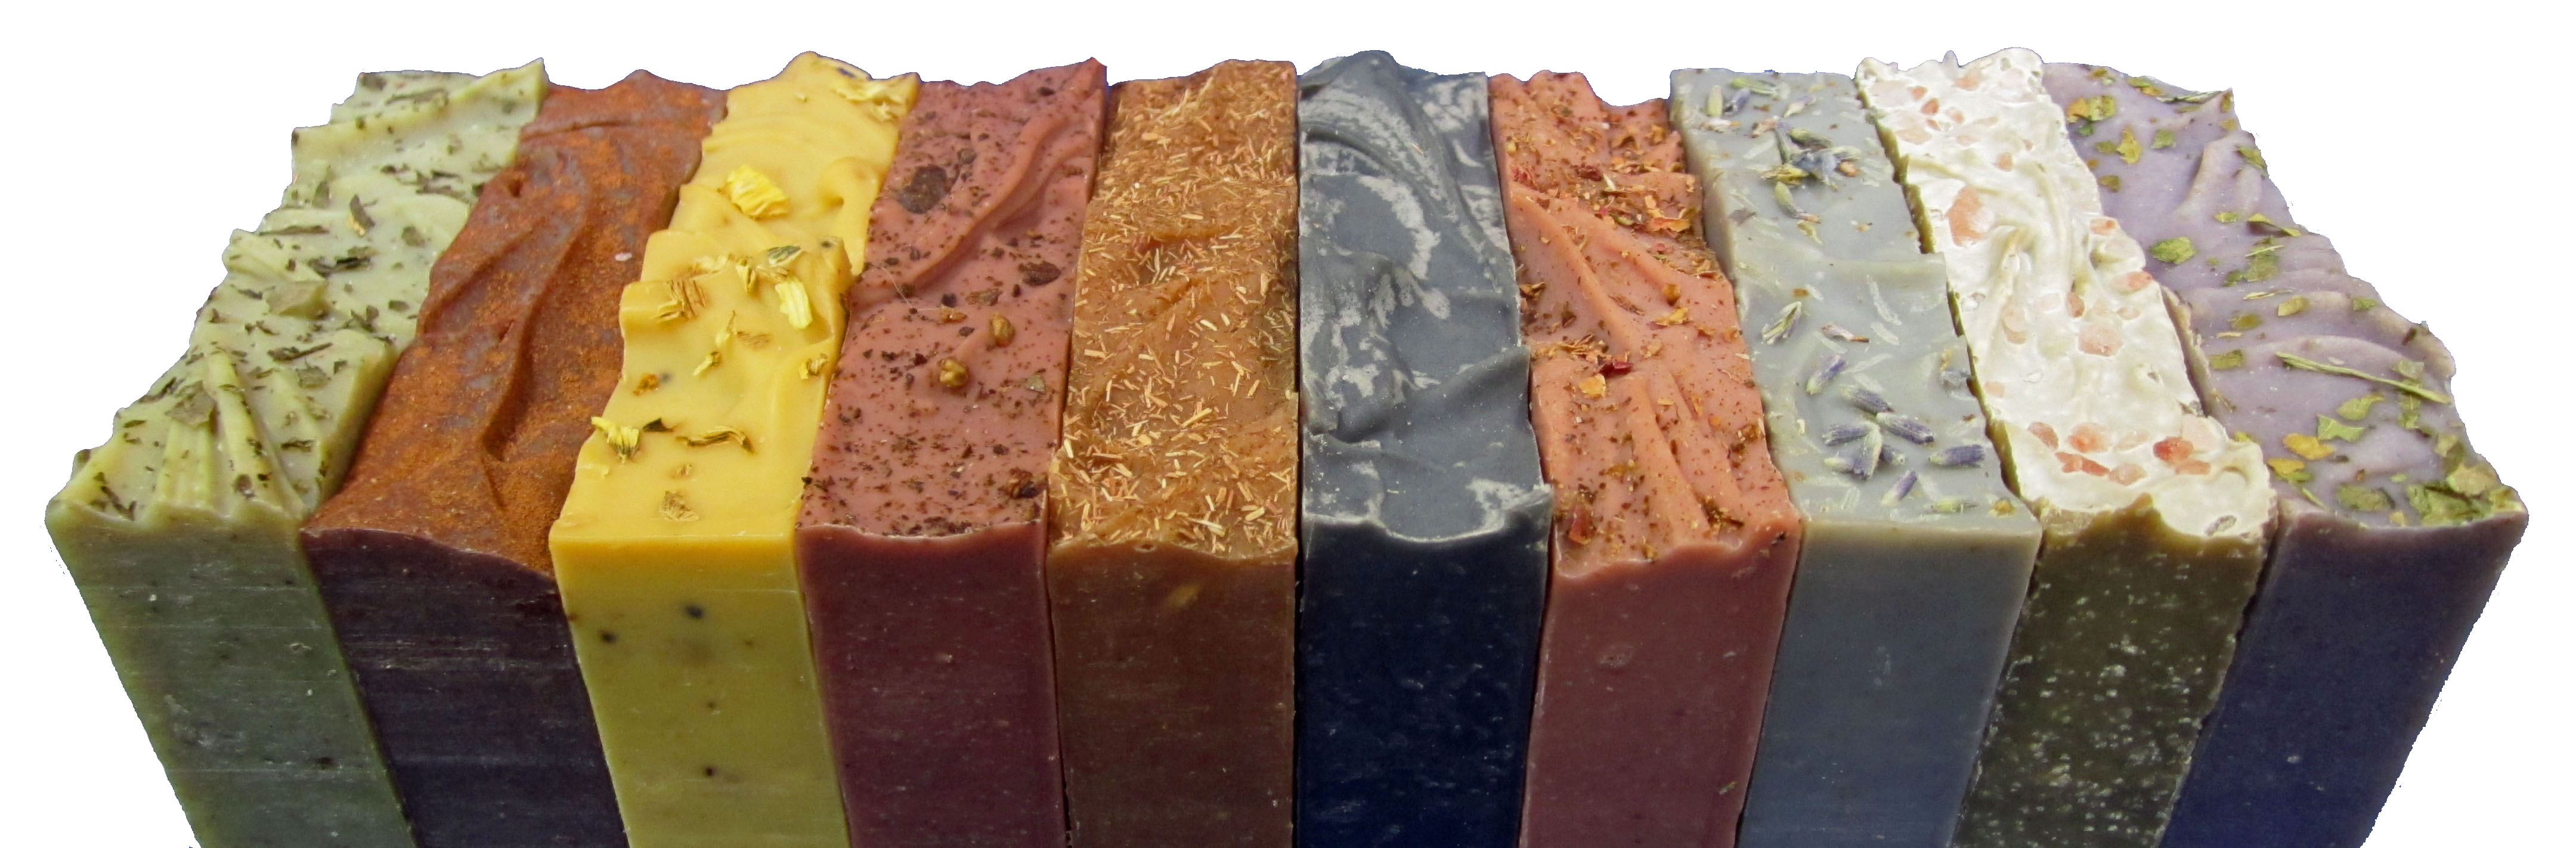 10 colorful handmade organic natural soaps